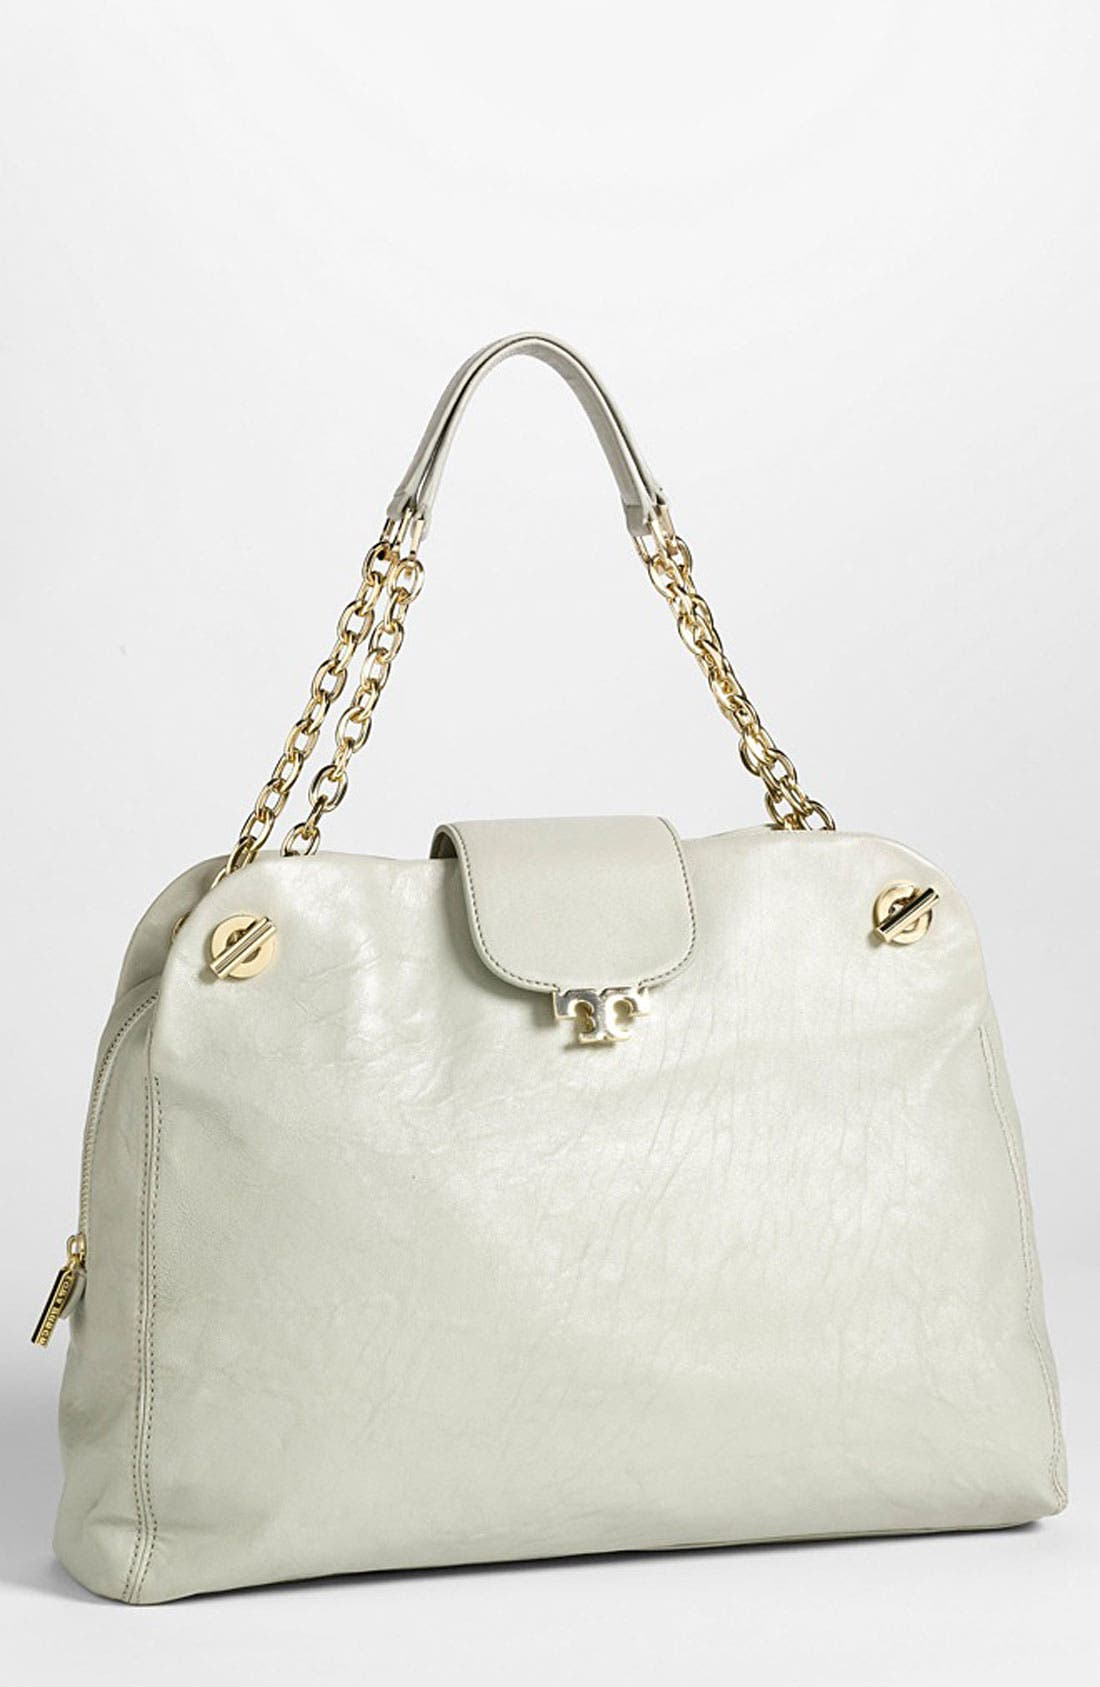 Main Image - Tory Burch 'Megan' Satchel